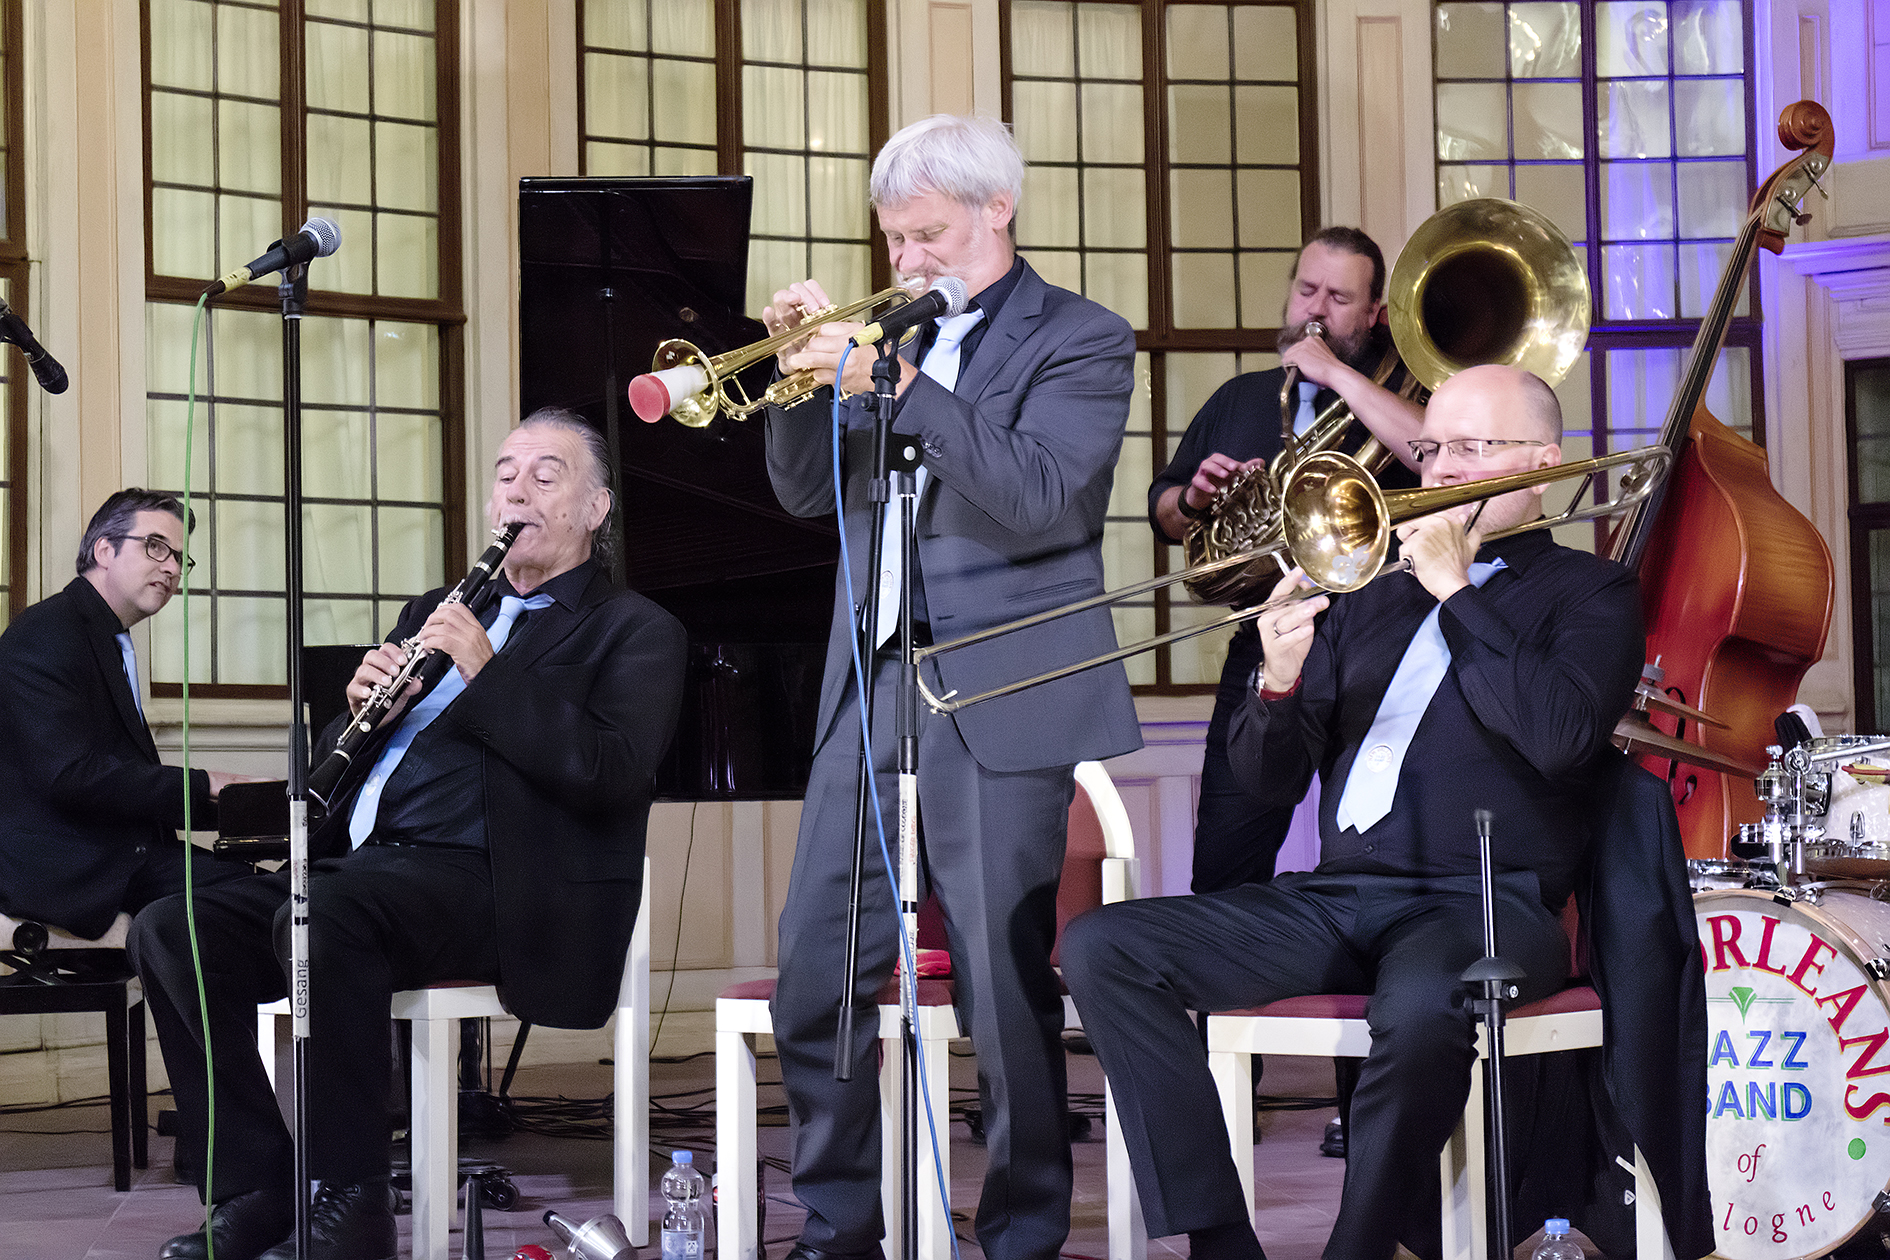 New Orleans Jazzband front